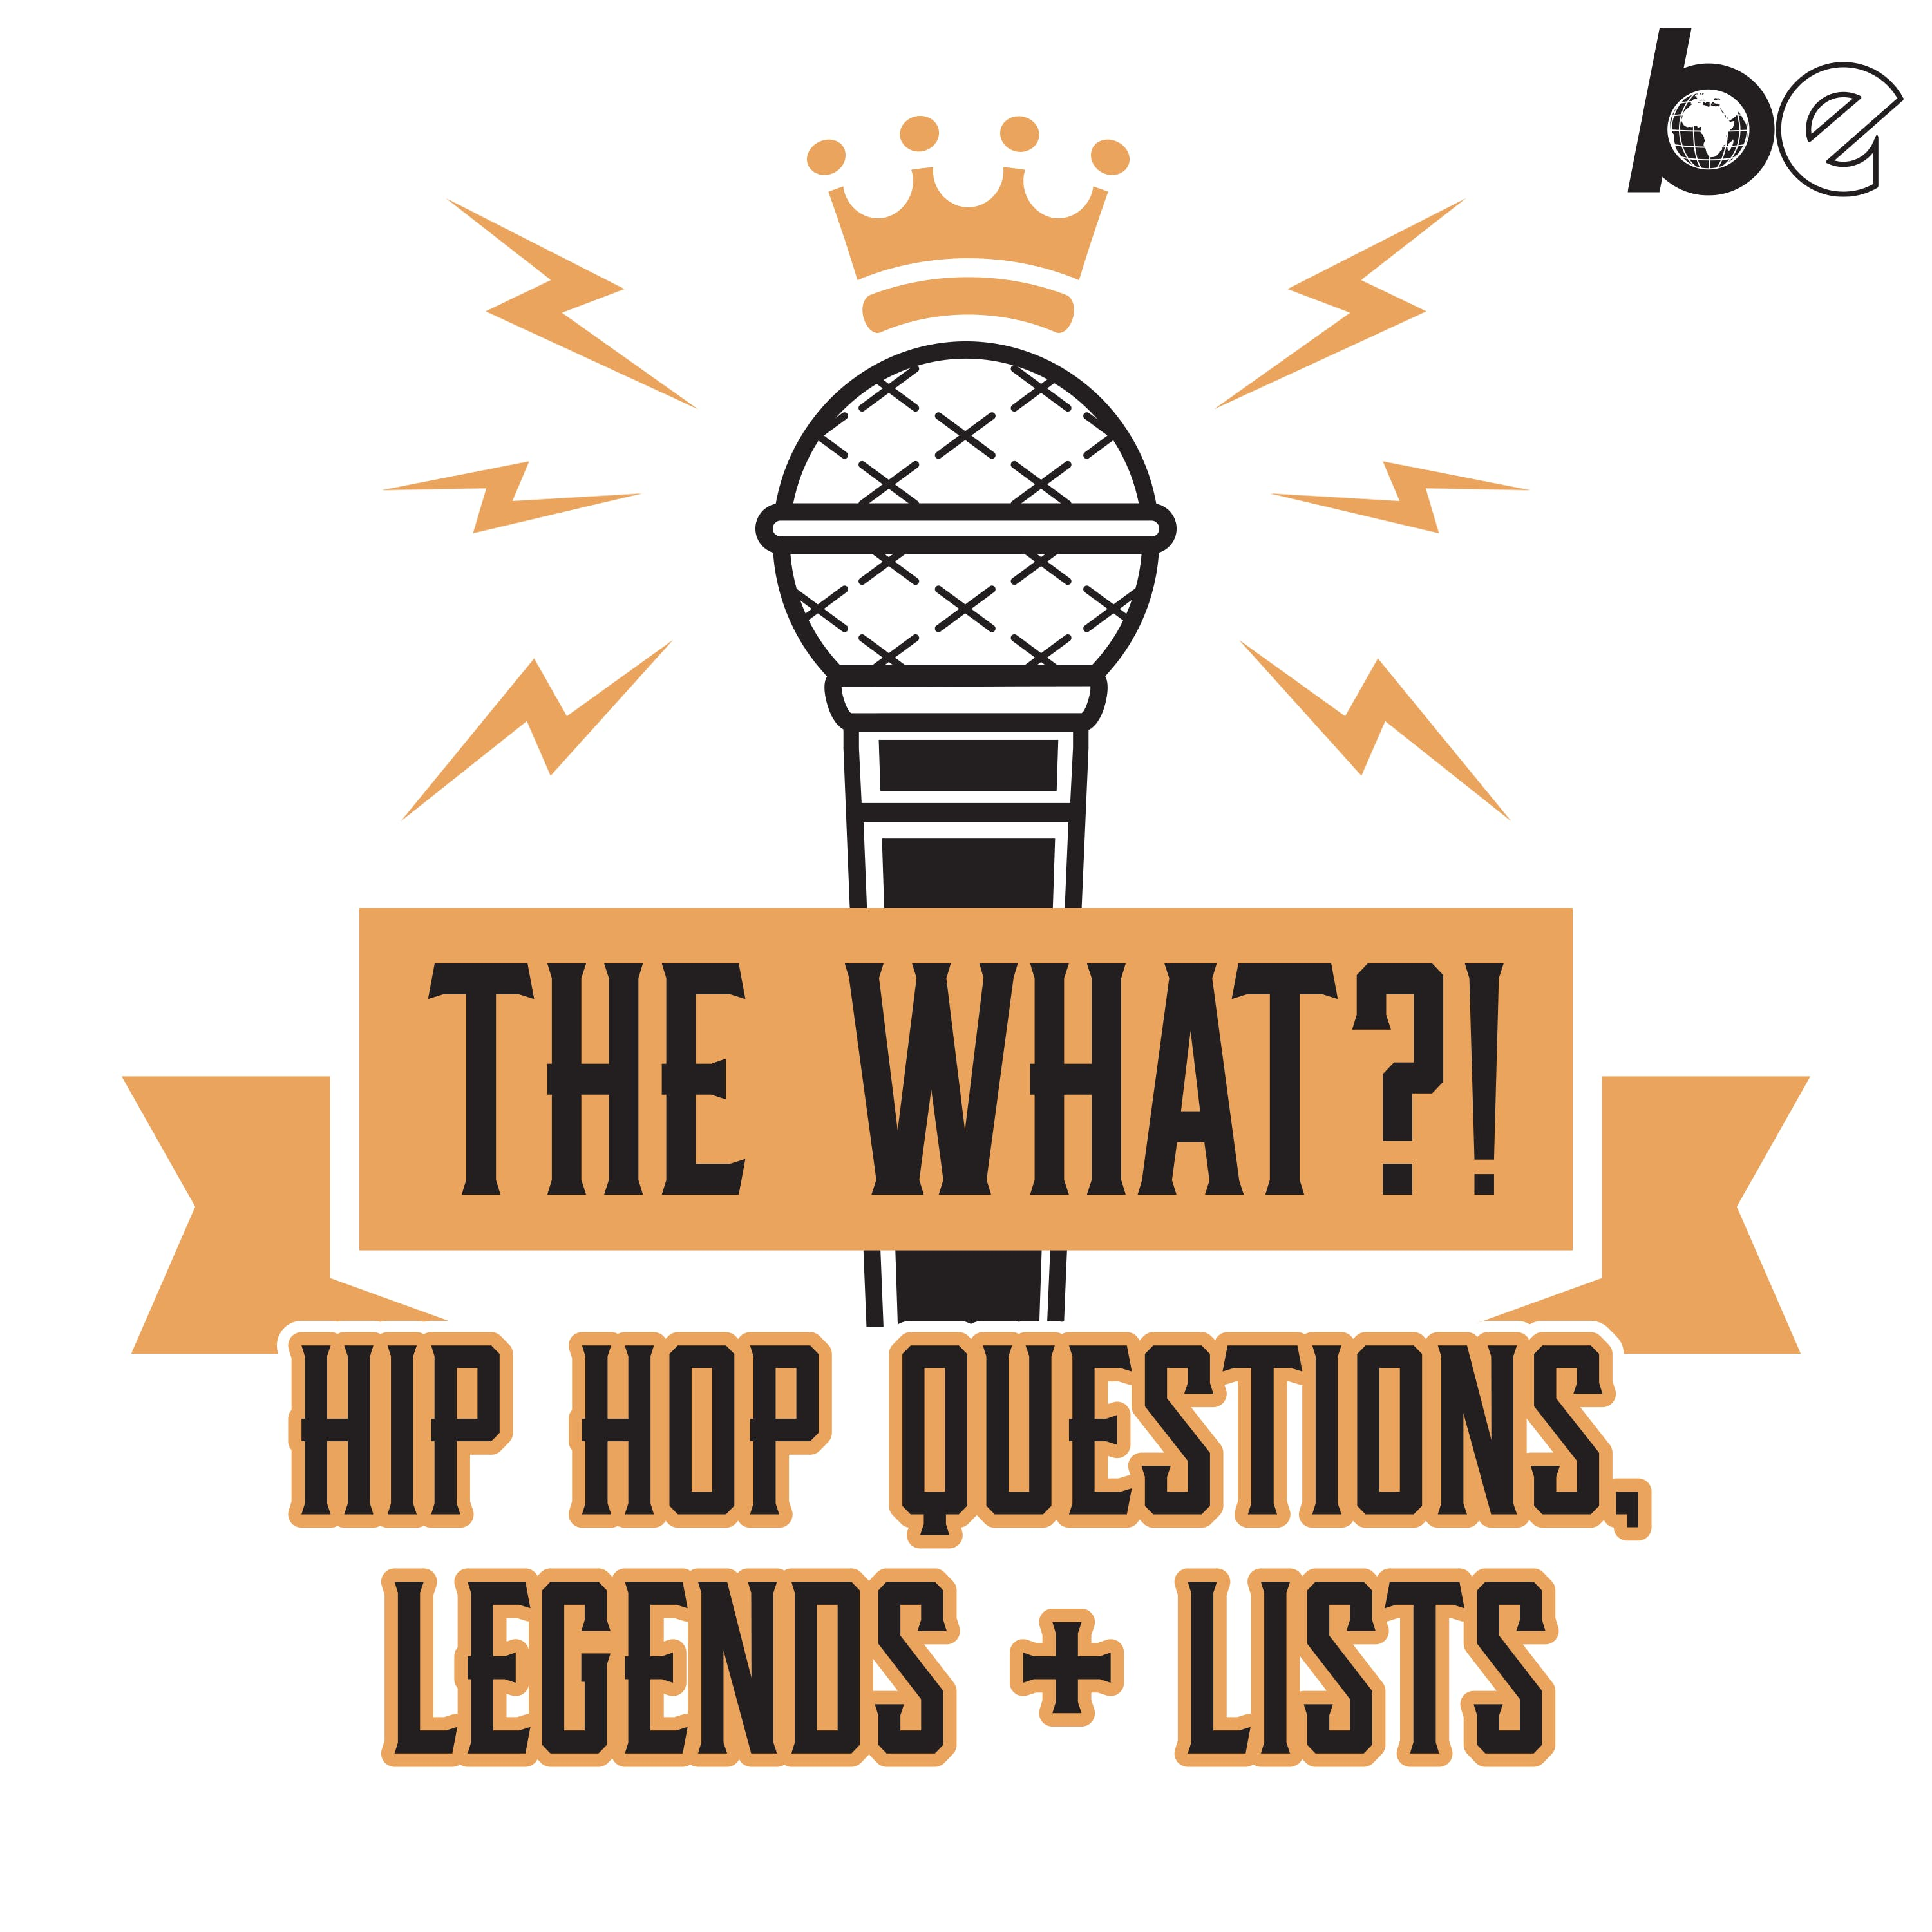 Introducing: The What?!  Hip Hop Questions, Legends + Lists